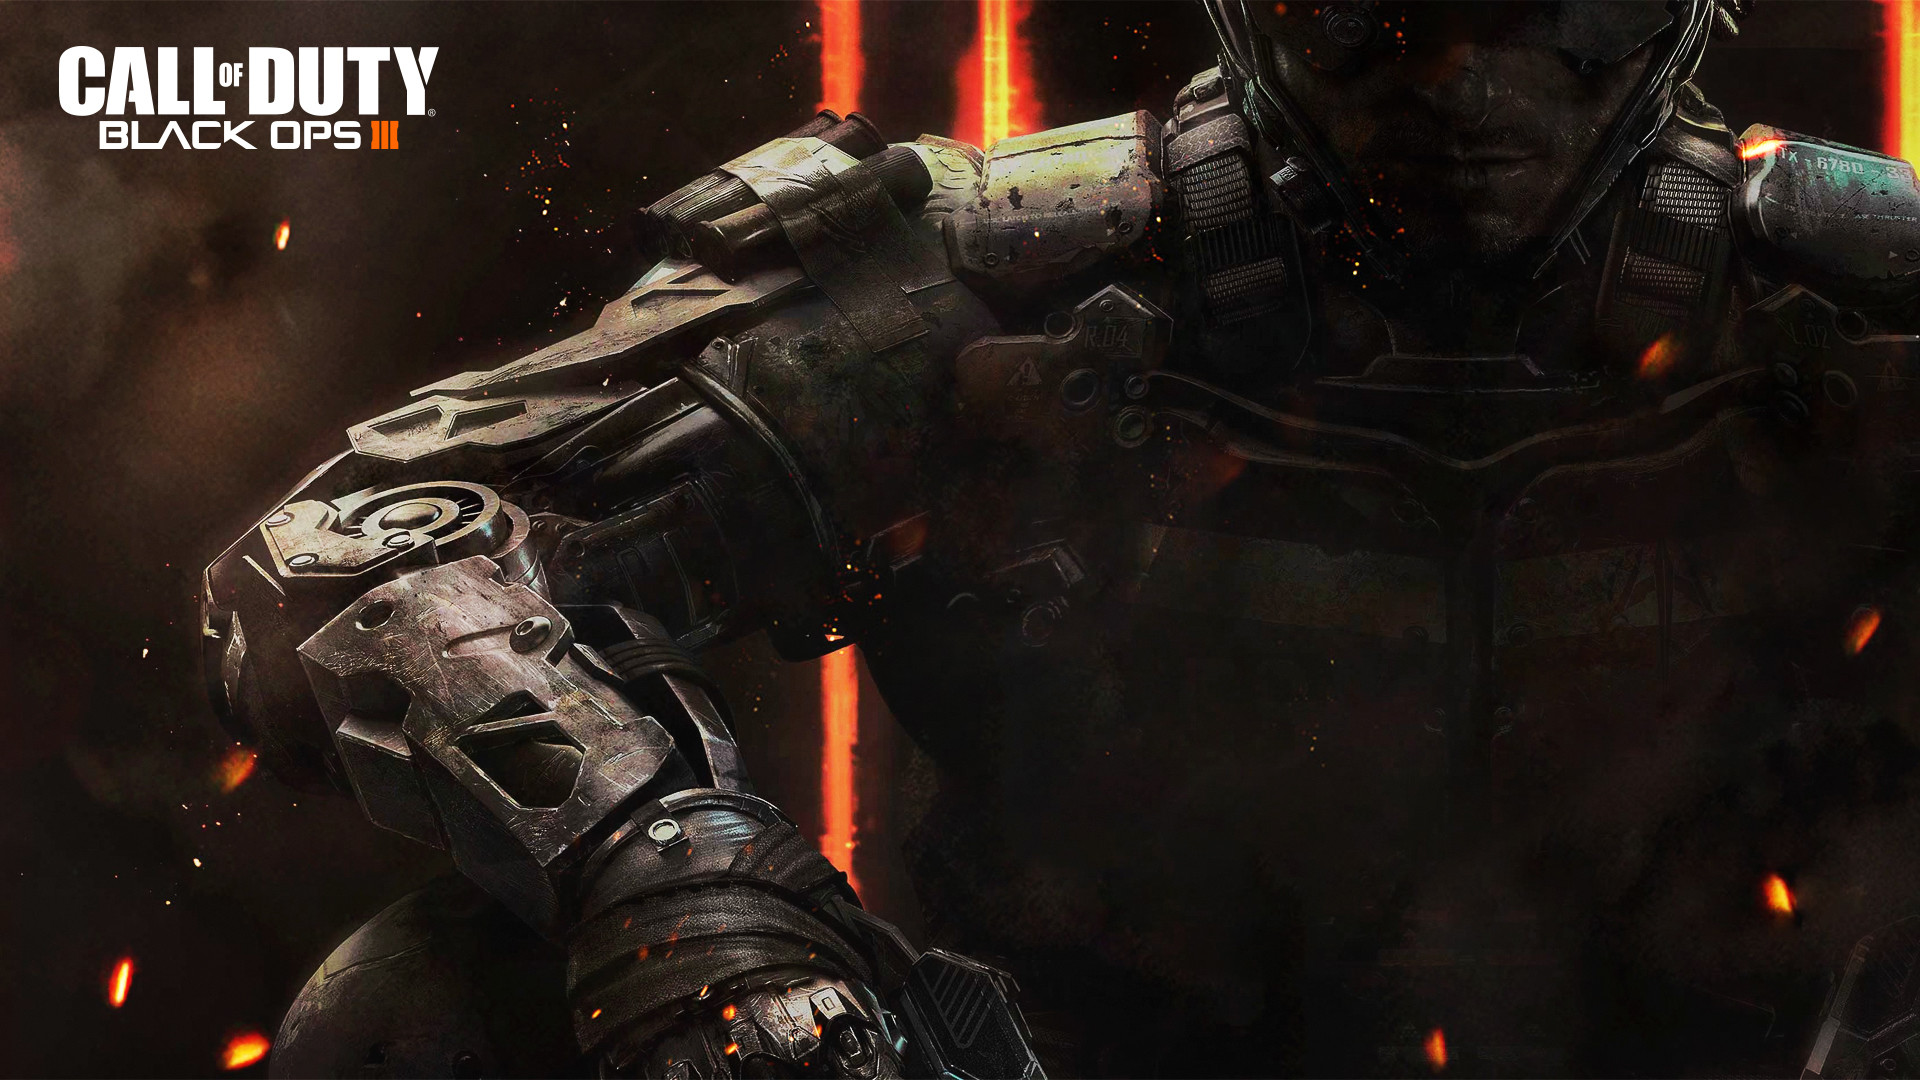 Free HD Black Ops 3 Zombie Wallpapers by unofficialcallofduty.com